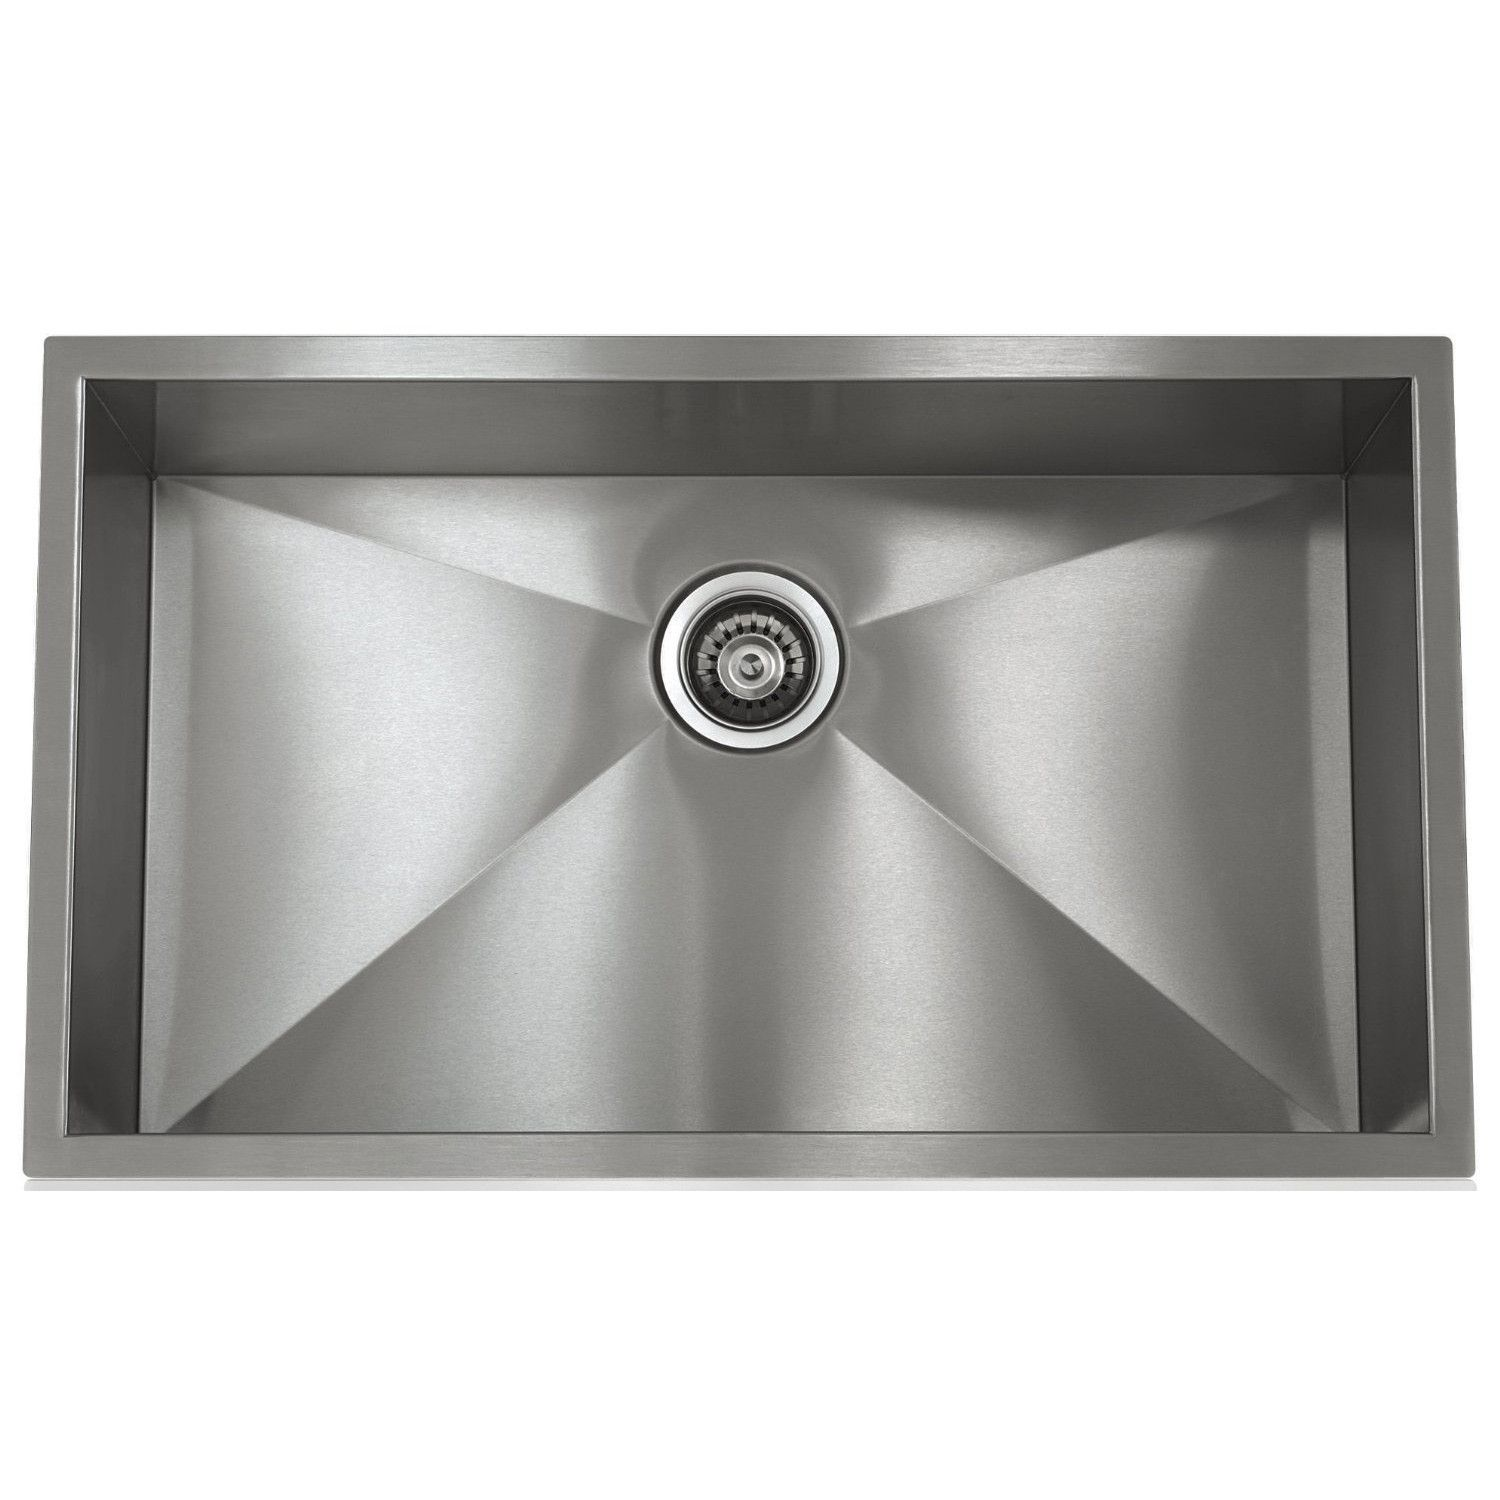 Lenova Ss 0ri S5 28 Inch Undermount Single Bowl 16 Gauge Stainless Steel Kitchen Sink Undermount Kitchen Sinks Stainless Steel Kitchen Sink Kitchen Sink